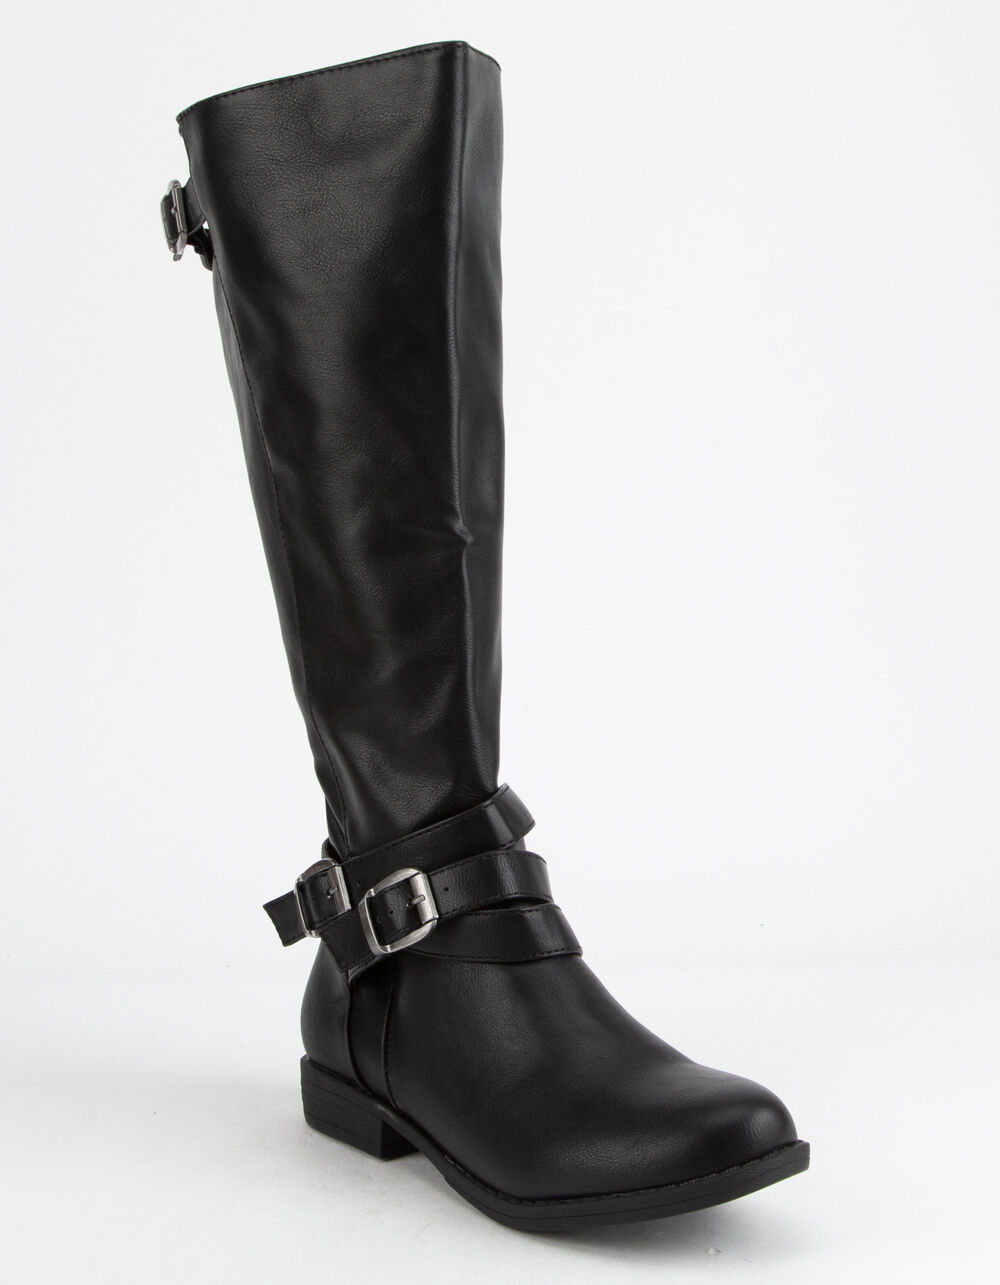 Image of BAMBOO MONTANA RIDING BOOT